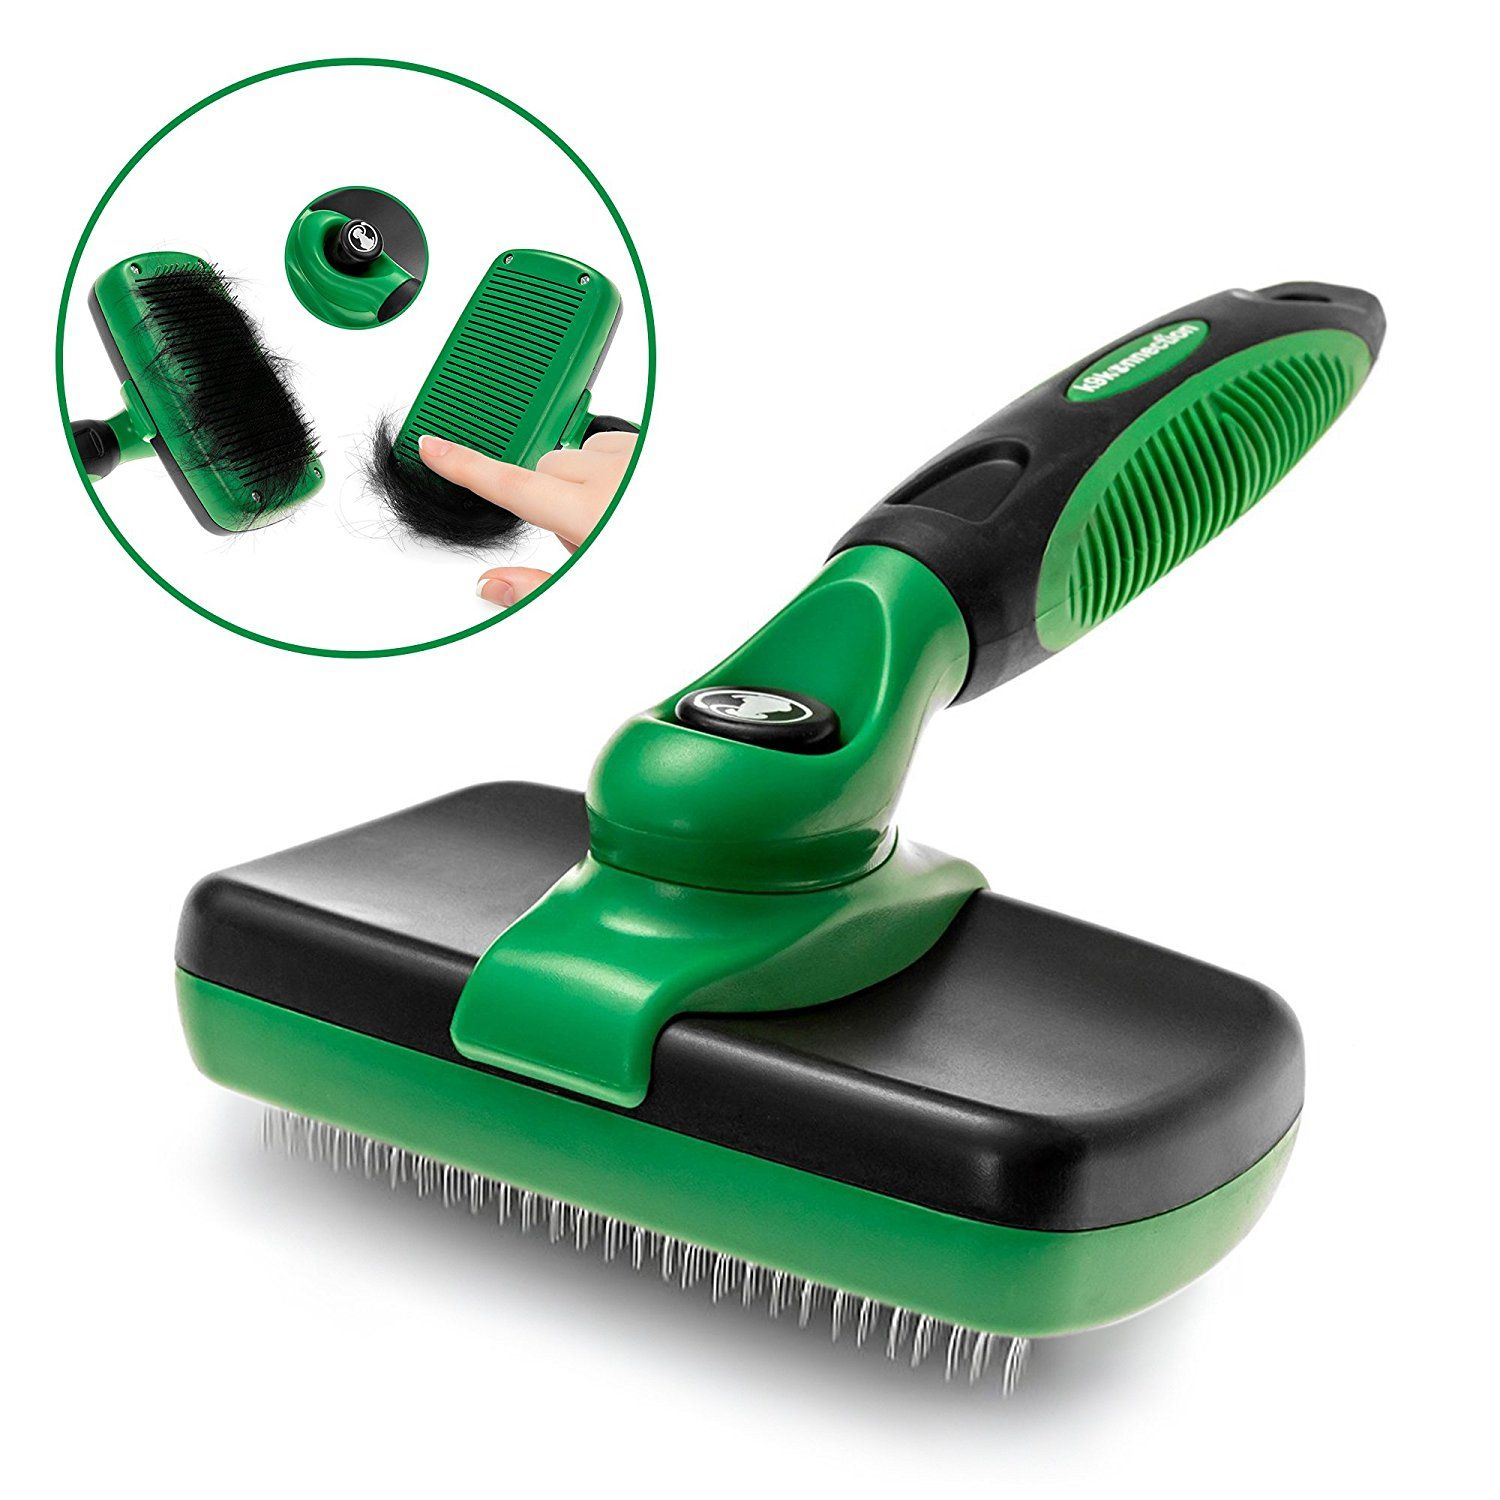 K9KONNECTION Professional Self Cleaning Slicker Brush for